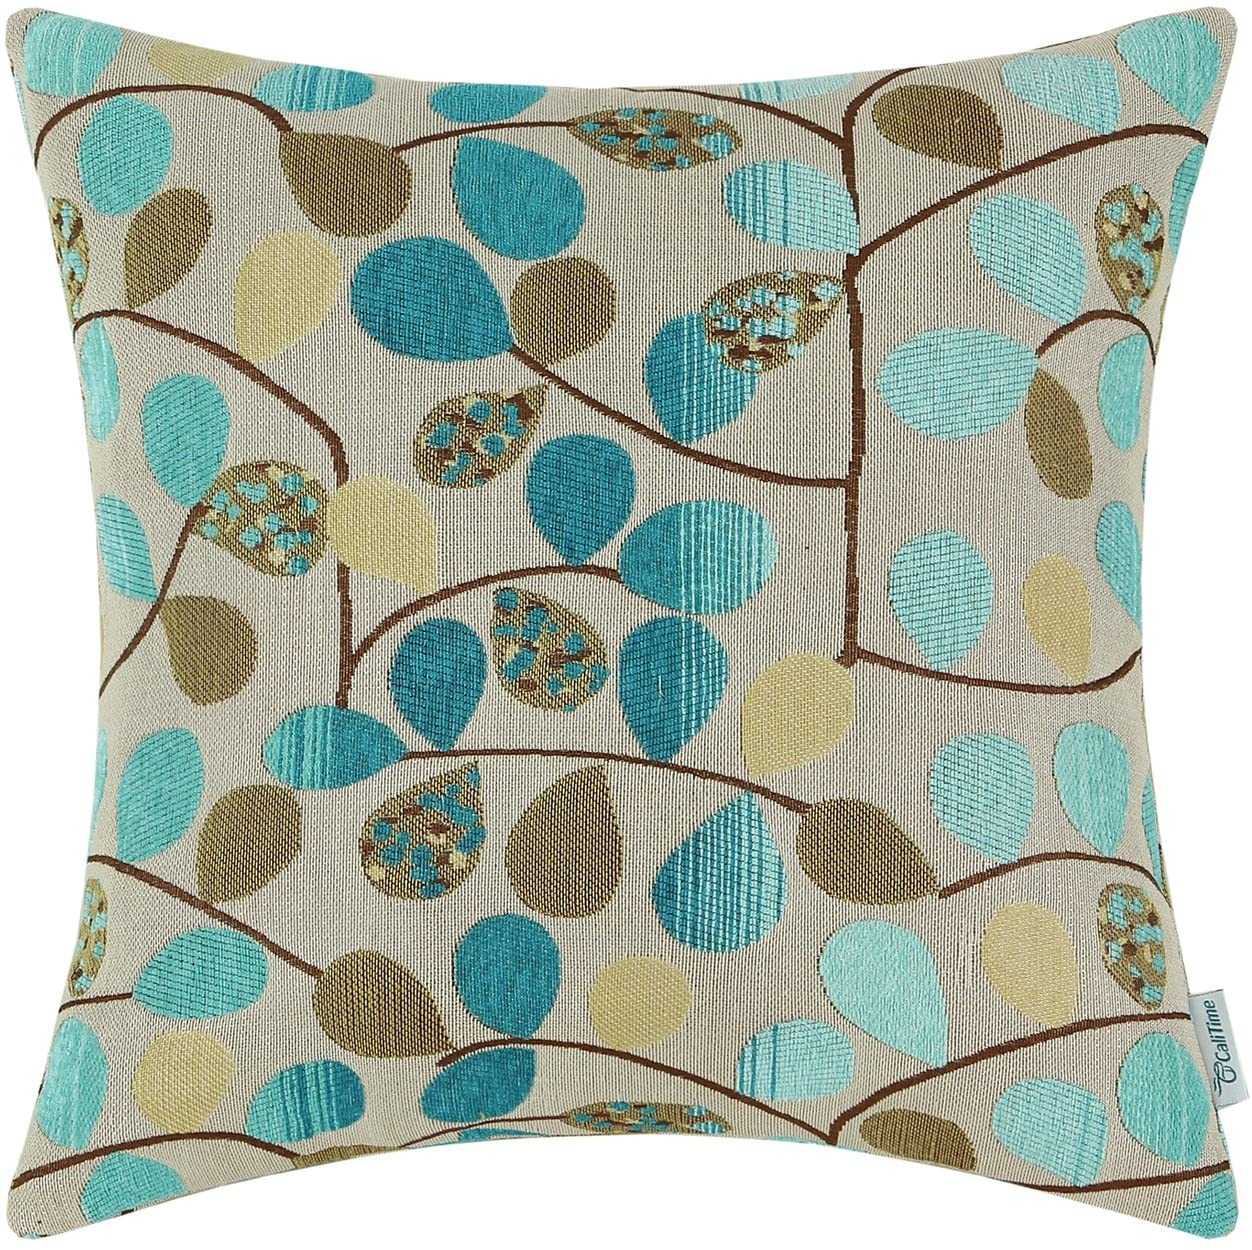 CaliTime Cushion Cover Throw Pillow Case Shell for Couch Sofa Home Decoration Luxury Chenille Cute Leaves Both Sides 18 X 18 Inches Ecru Teal